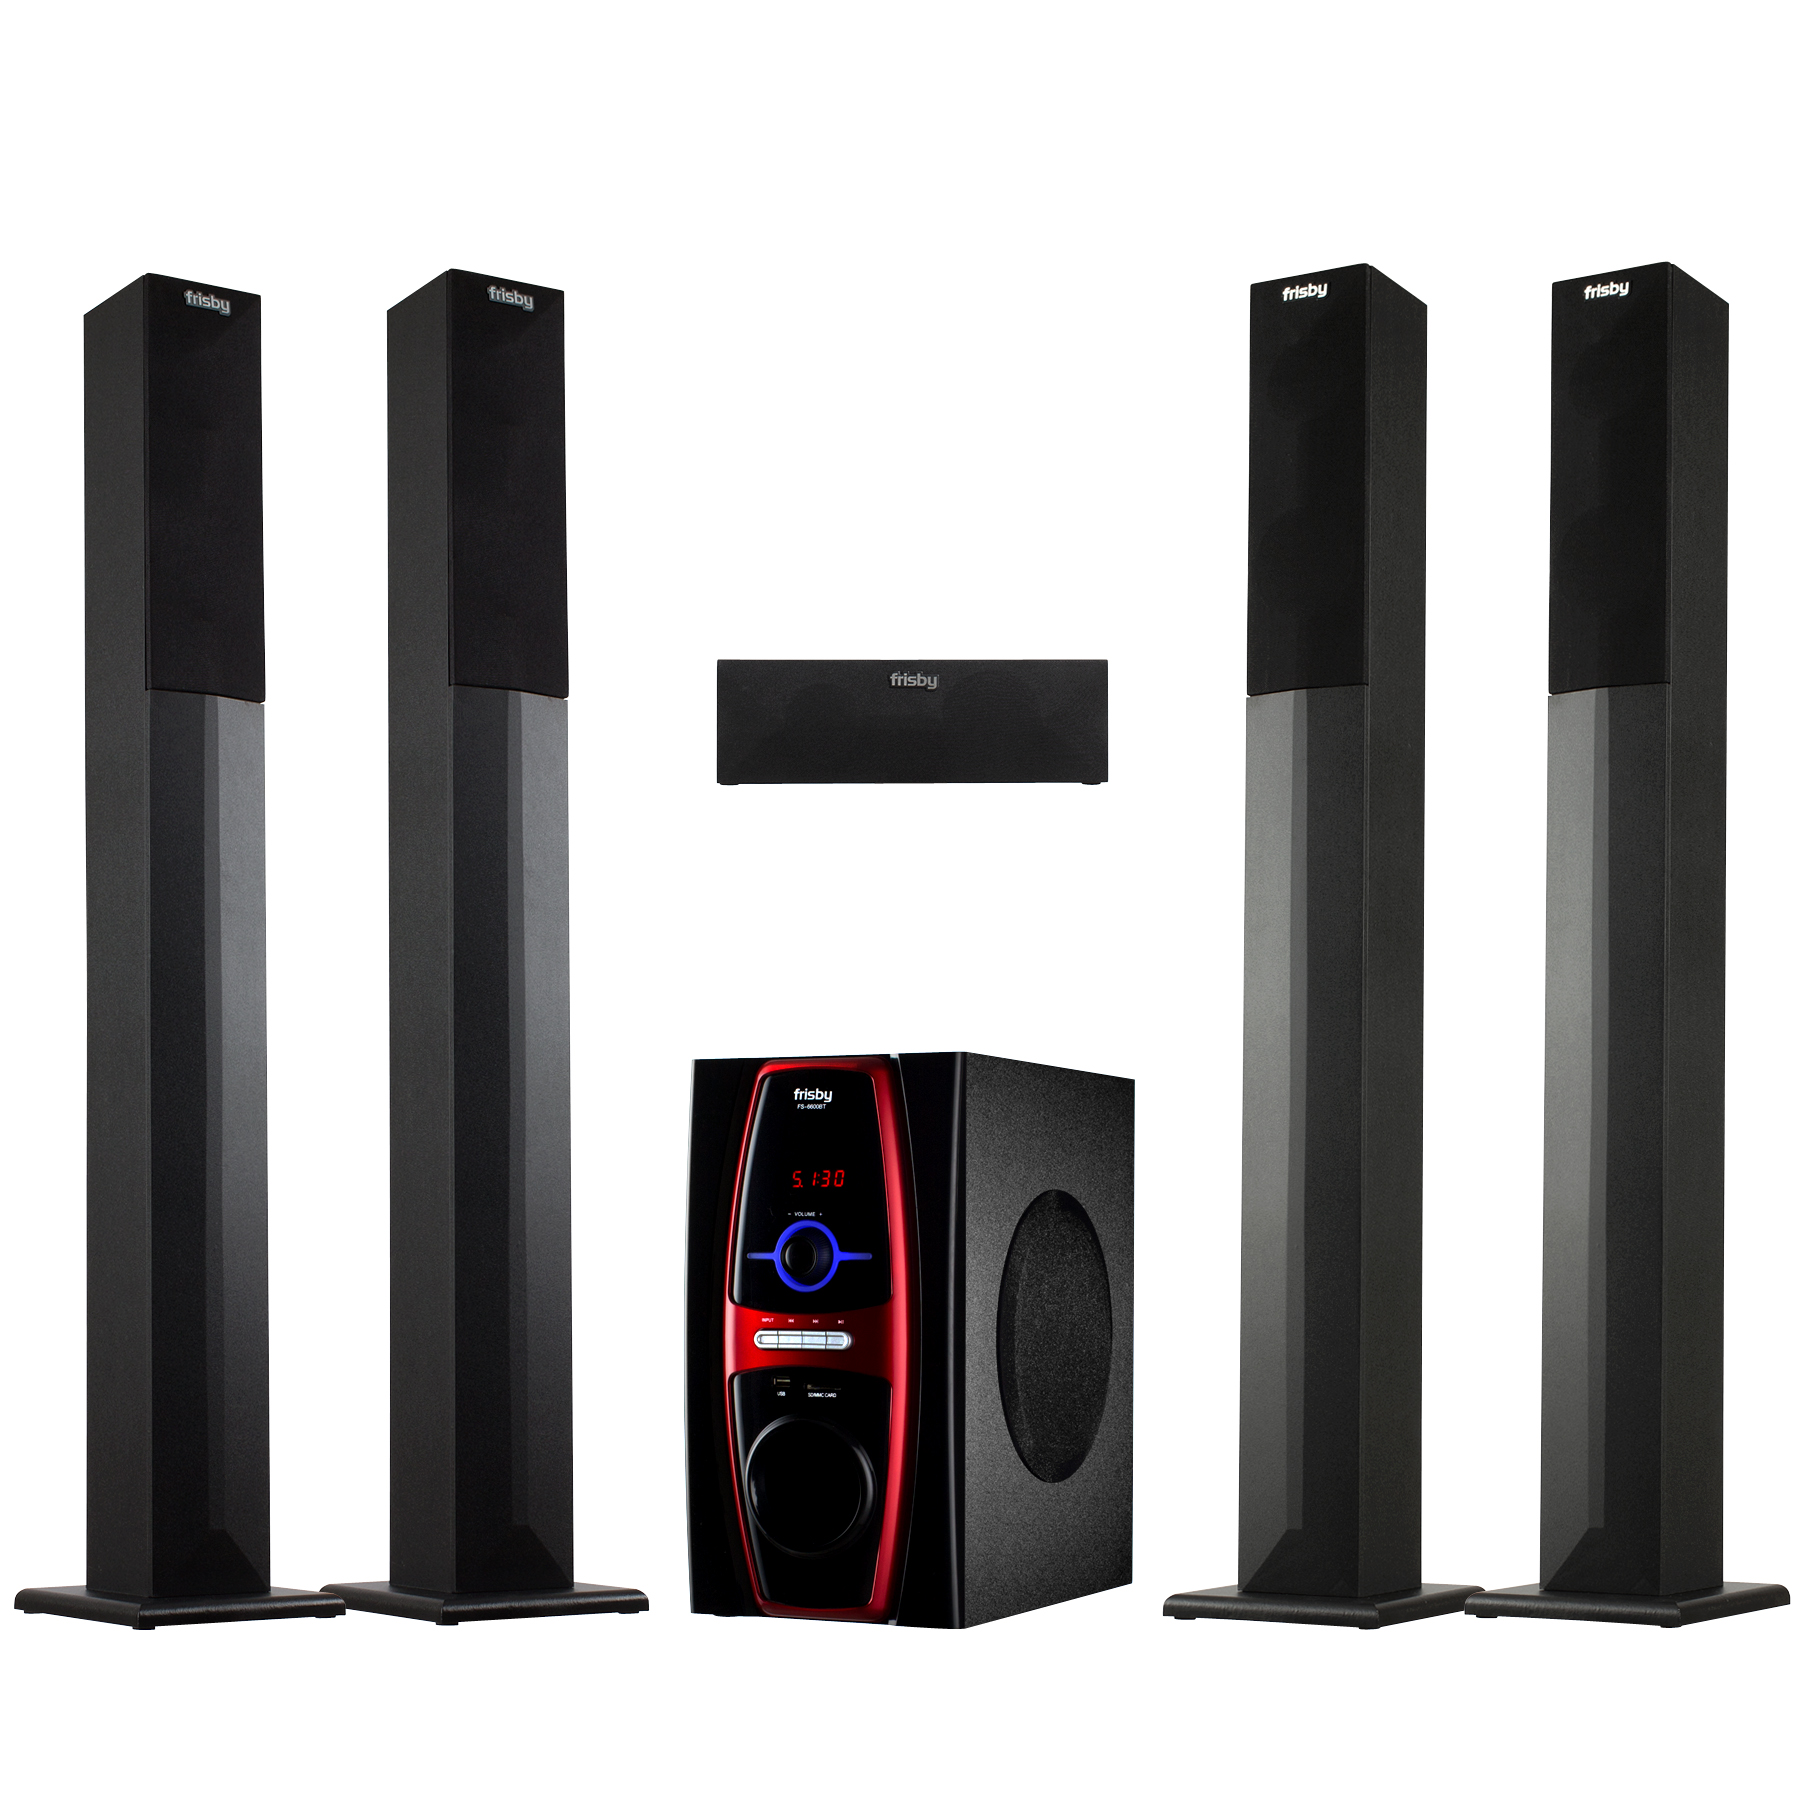 Frisby FS-6600BT 5.1 Surround Sound Home Theater Tower Speaker System with Bluetooth USB SD & Remote Control by Frisby